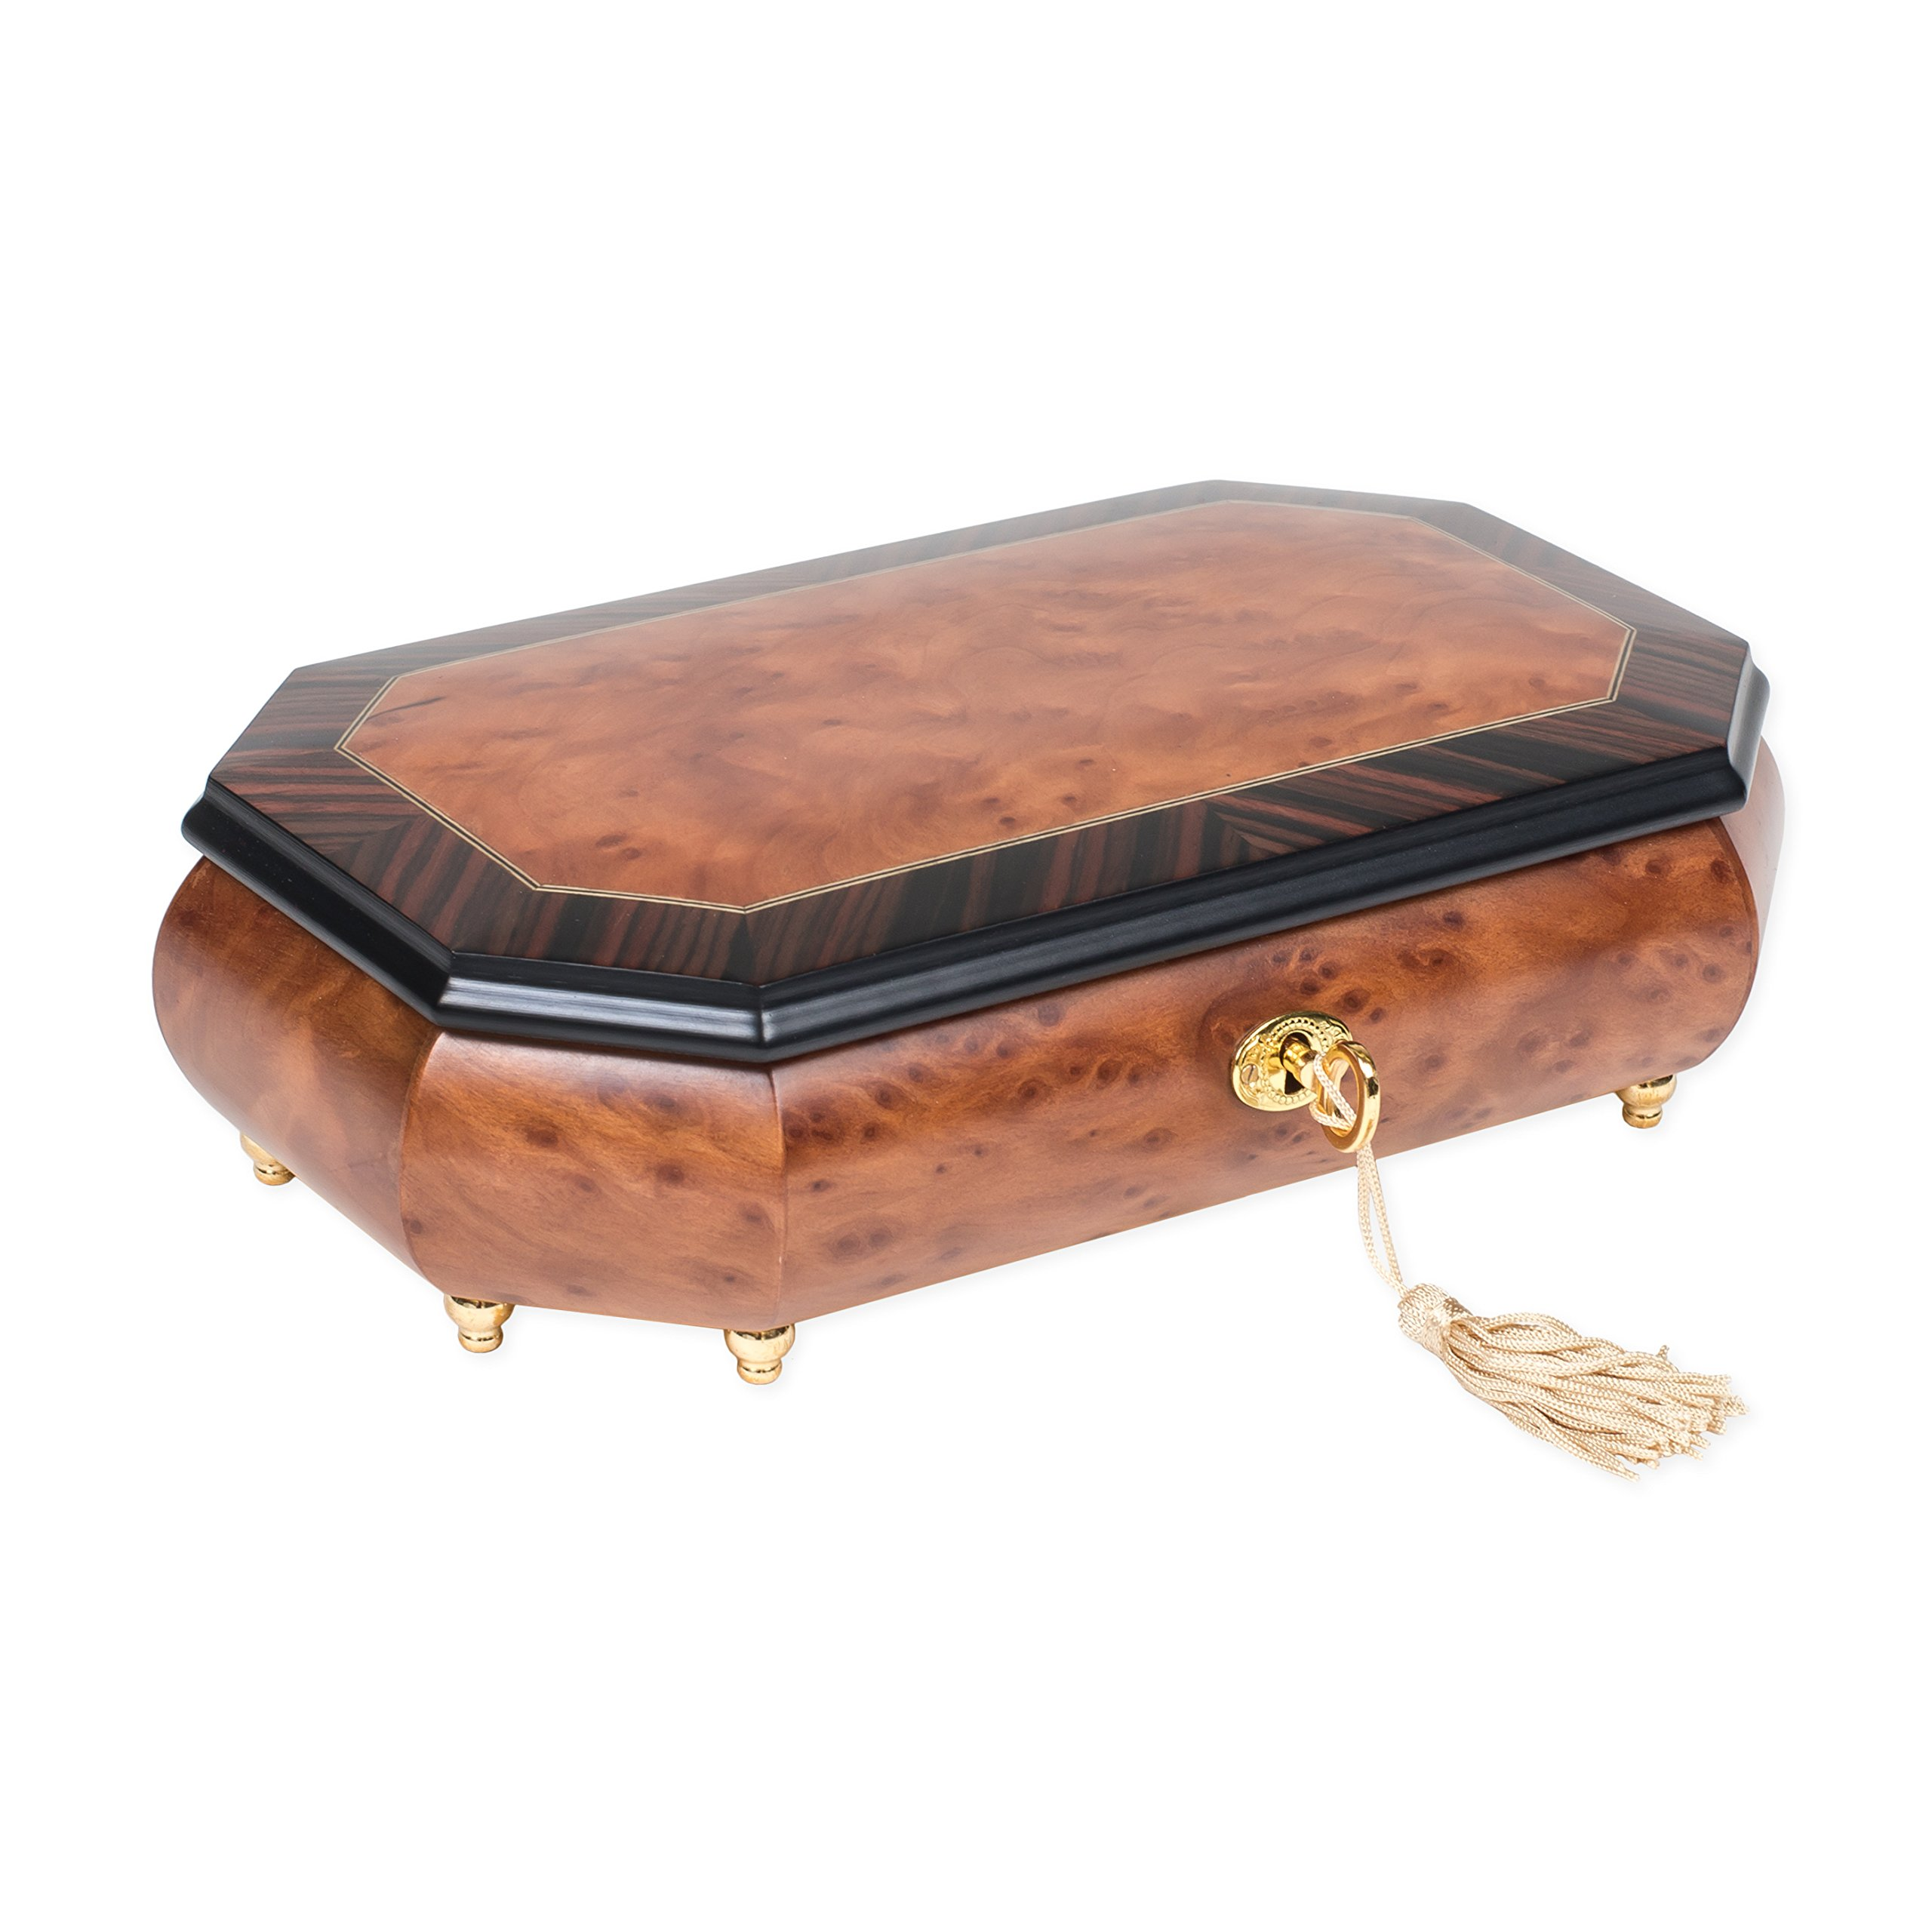 Two Wood Italian Hand Crafted Inlay Trunk Style Music Box Plays Magic Flute